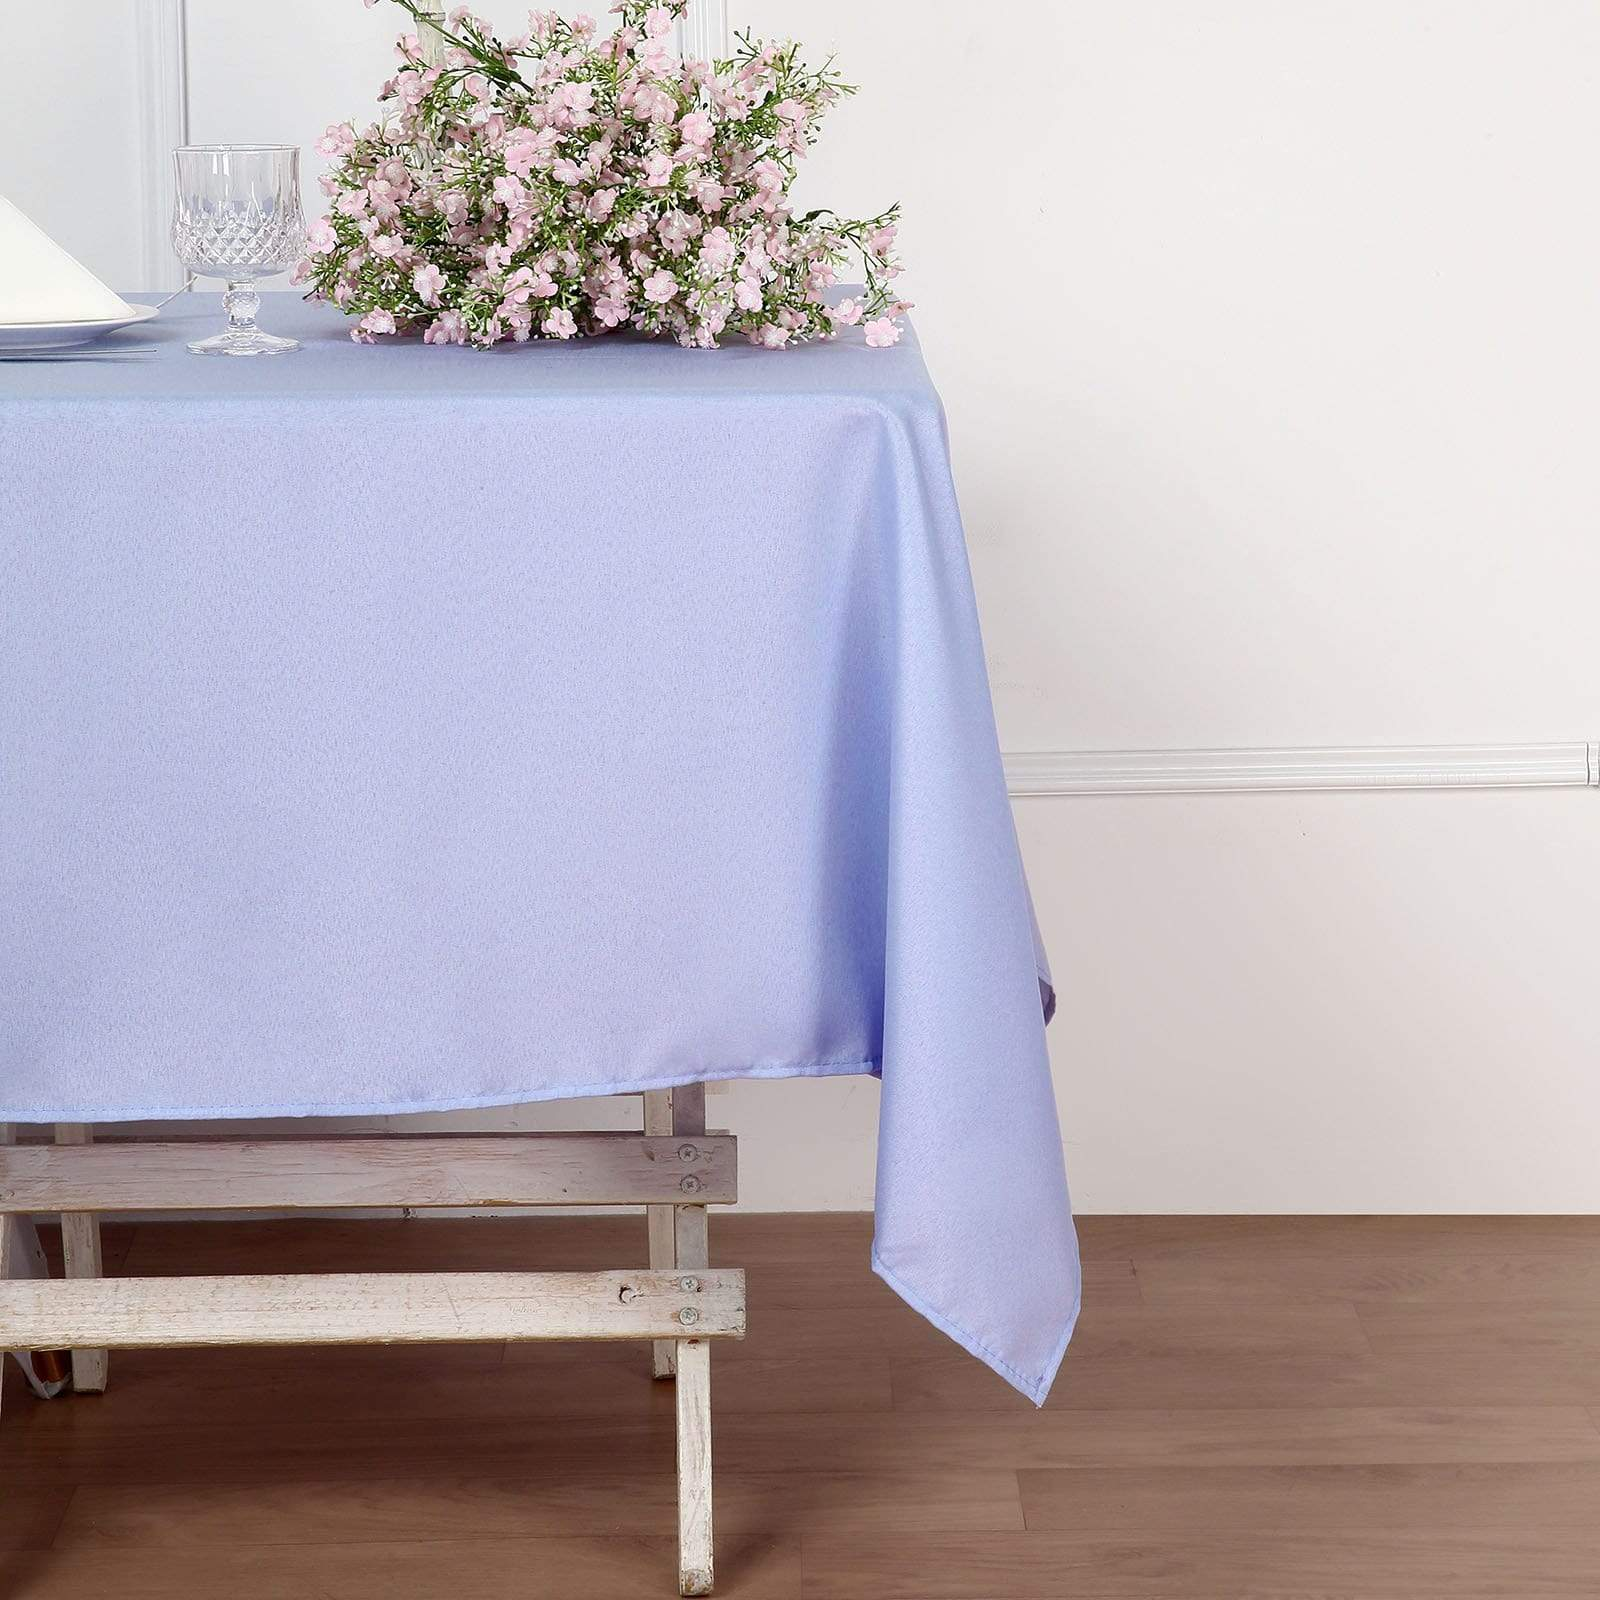 54 x 54 inch Lavender Square Polyester Tablecloth